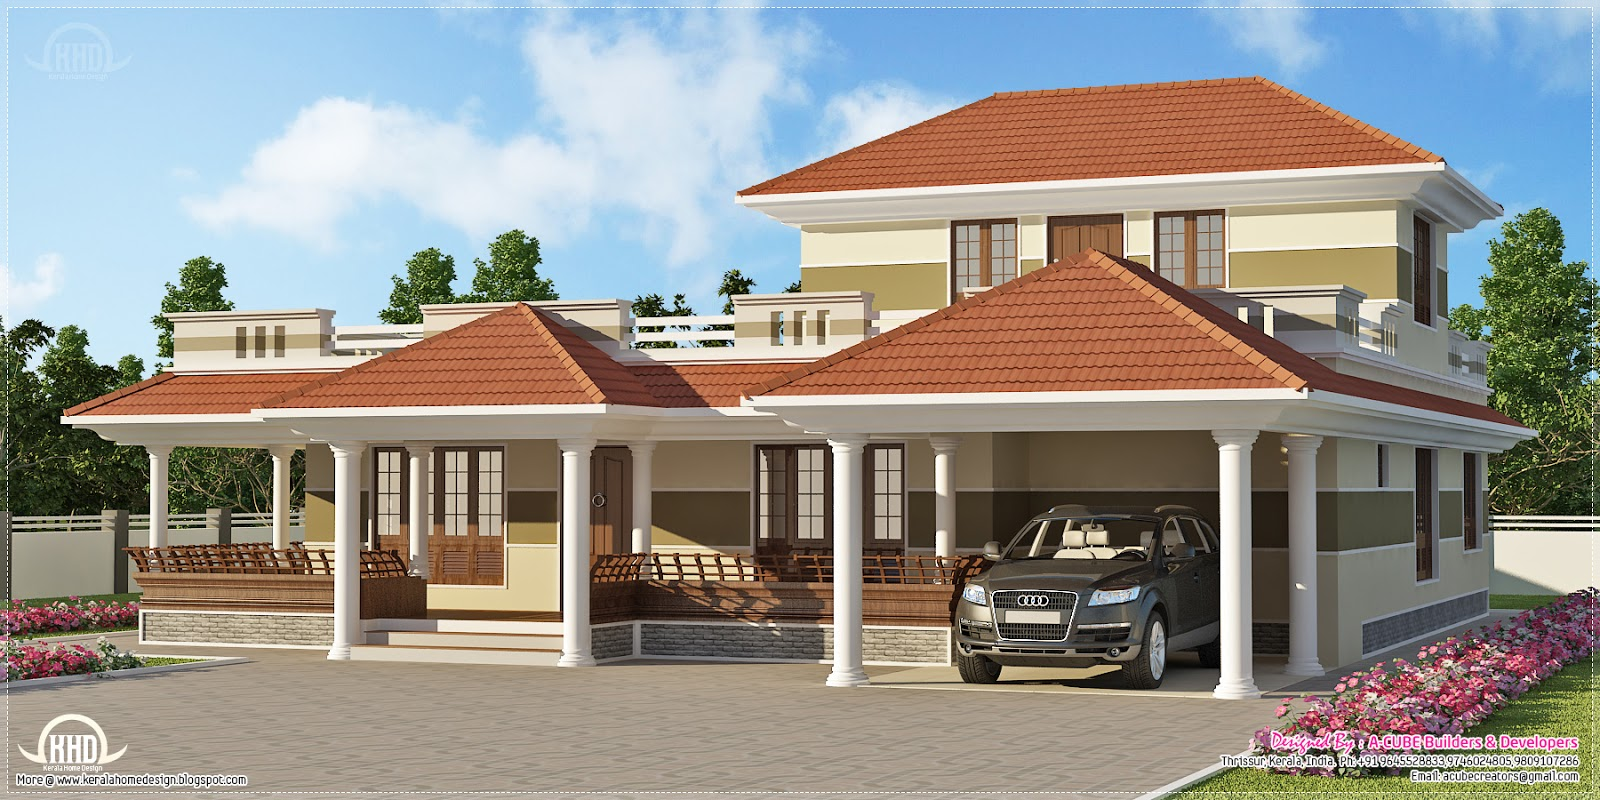 For more information about this Kerala villa